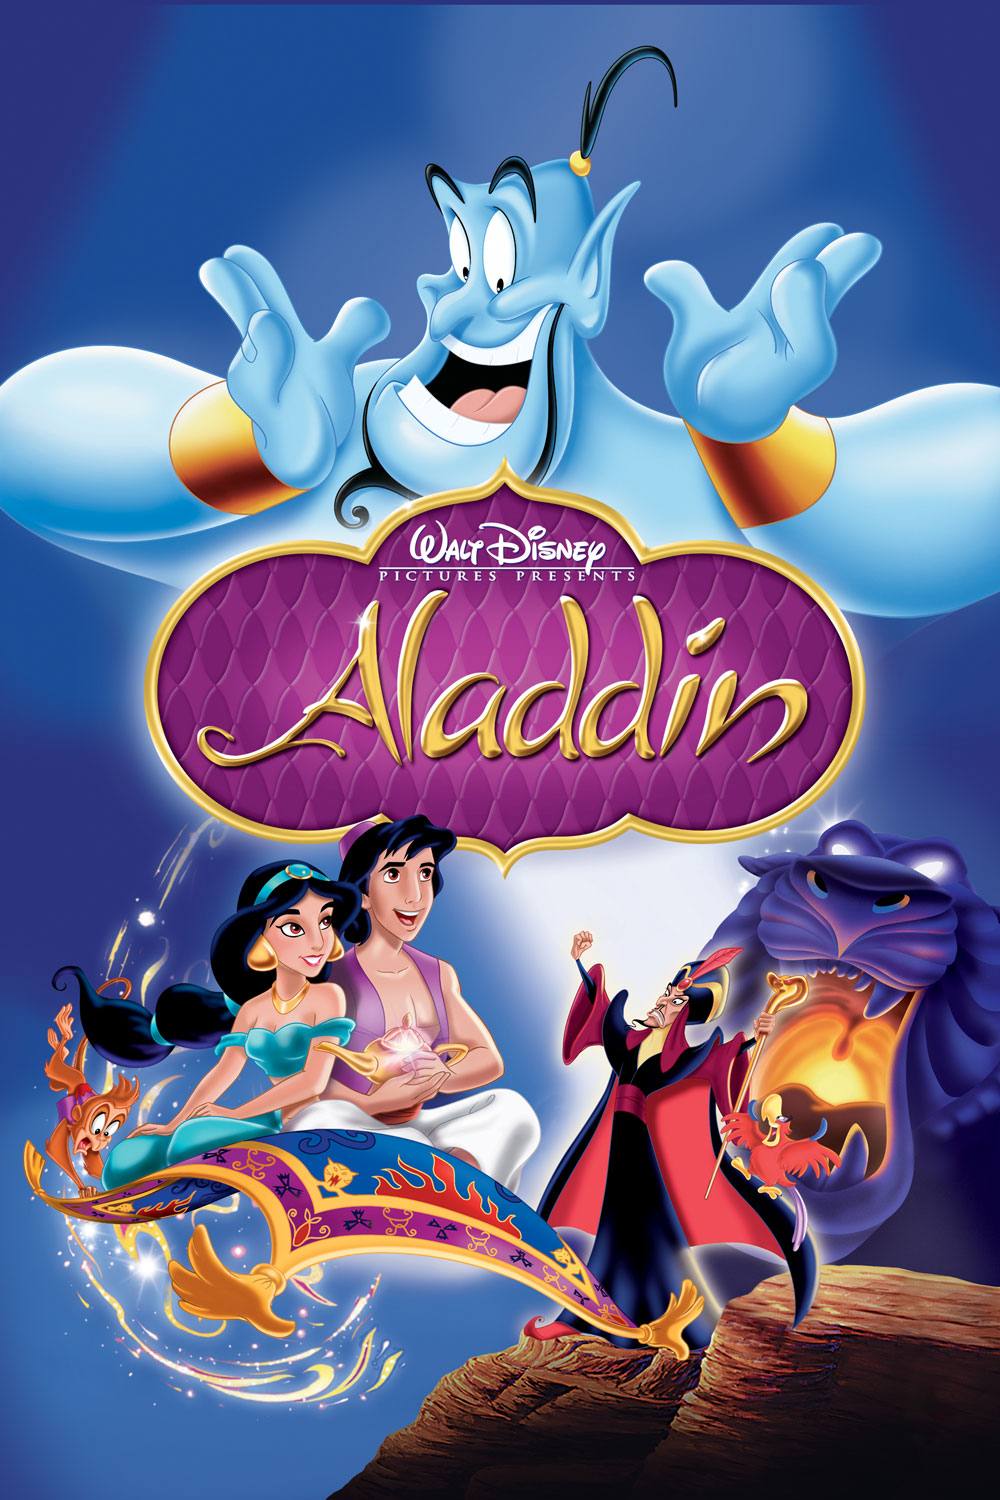 Next Up We Have One Of The Most Popular Disney Animated Films Ever Made Their 31st Film Aladdin While It Is Not As Artistically Special Or Epic